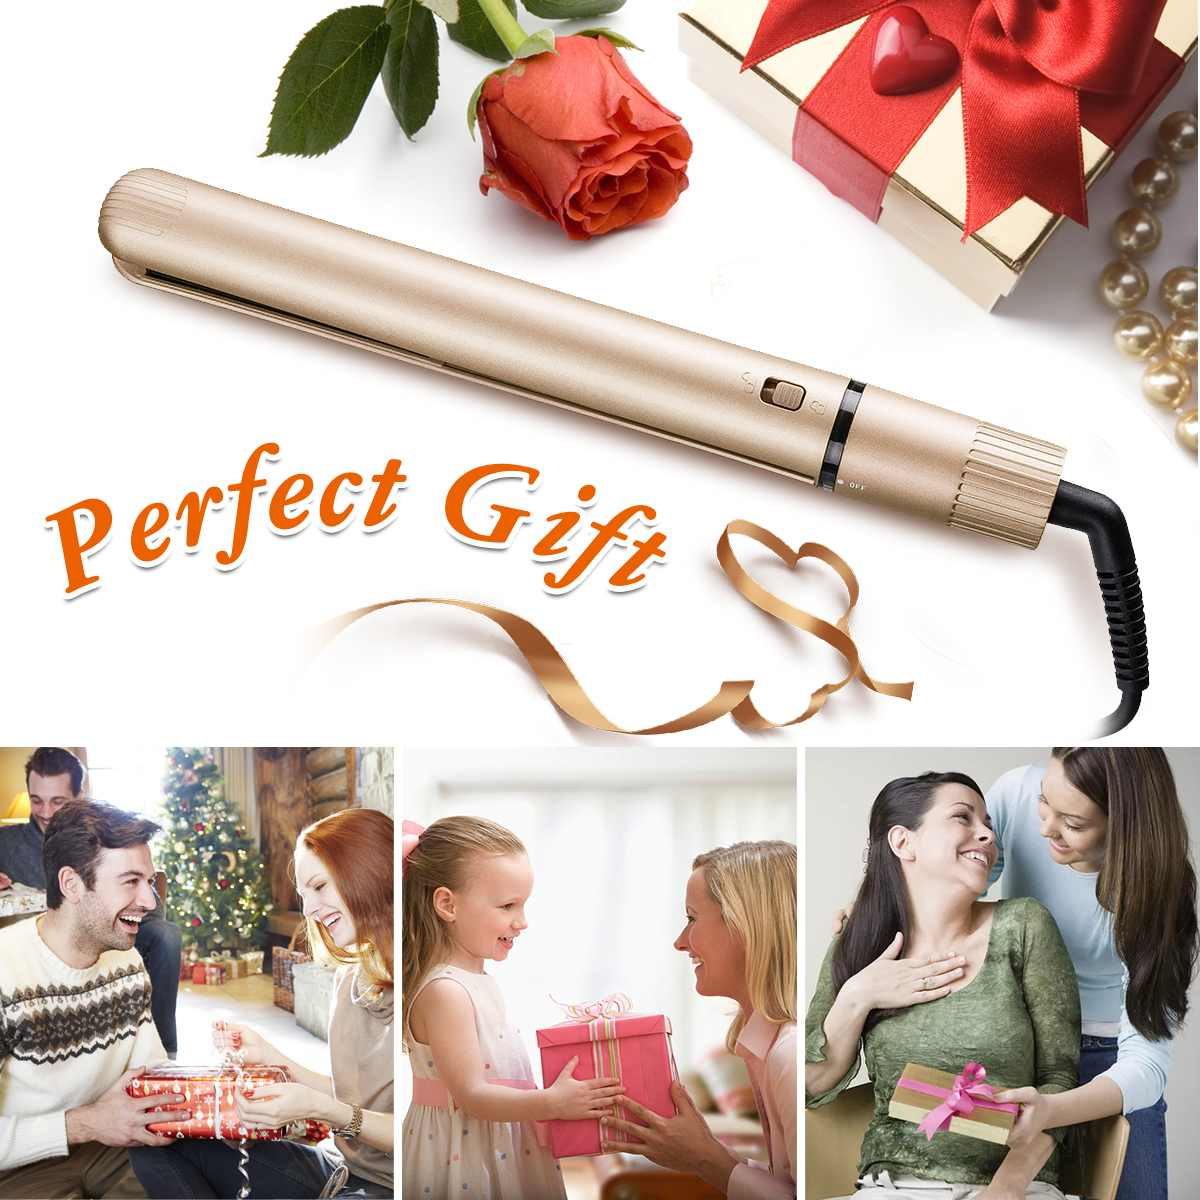 2 in 1 Hair Straightener Curler Professional Hair Flat Iron Ceramic Golden Electric Curler Hair Styling Tools with Comb Clip2 in 1 Hair Straightener Curler Professional Hair Flat Iron Ceramic Golden Electric Curler Hair Styling Tools with Comb Clip